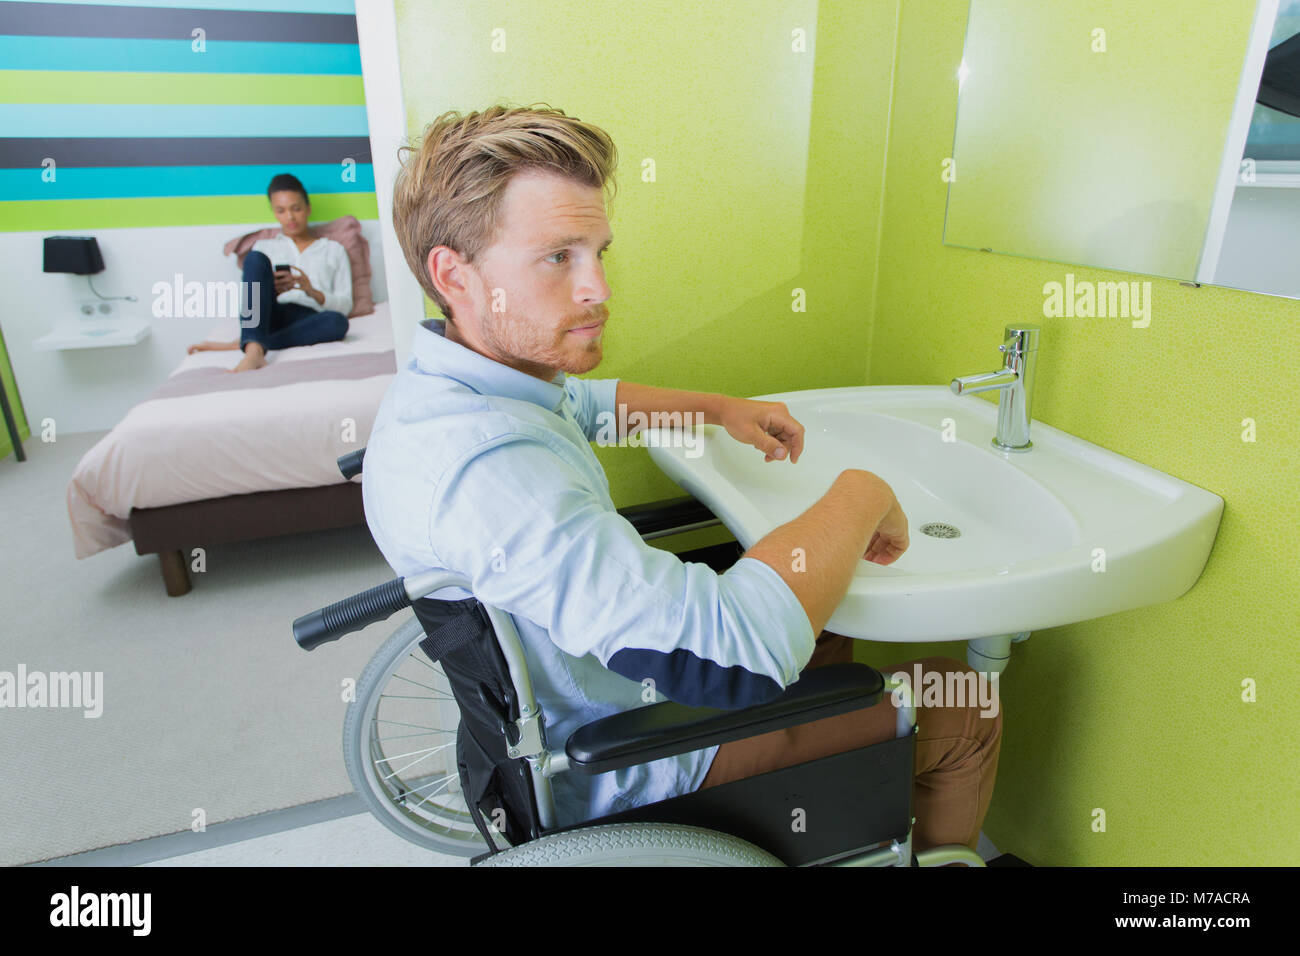 Disabled man using sink in hotel room Stock Photo